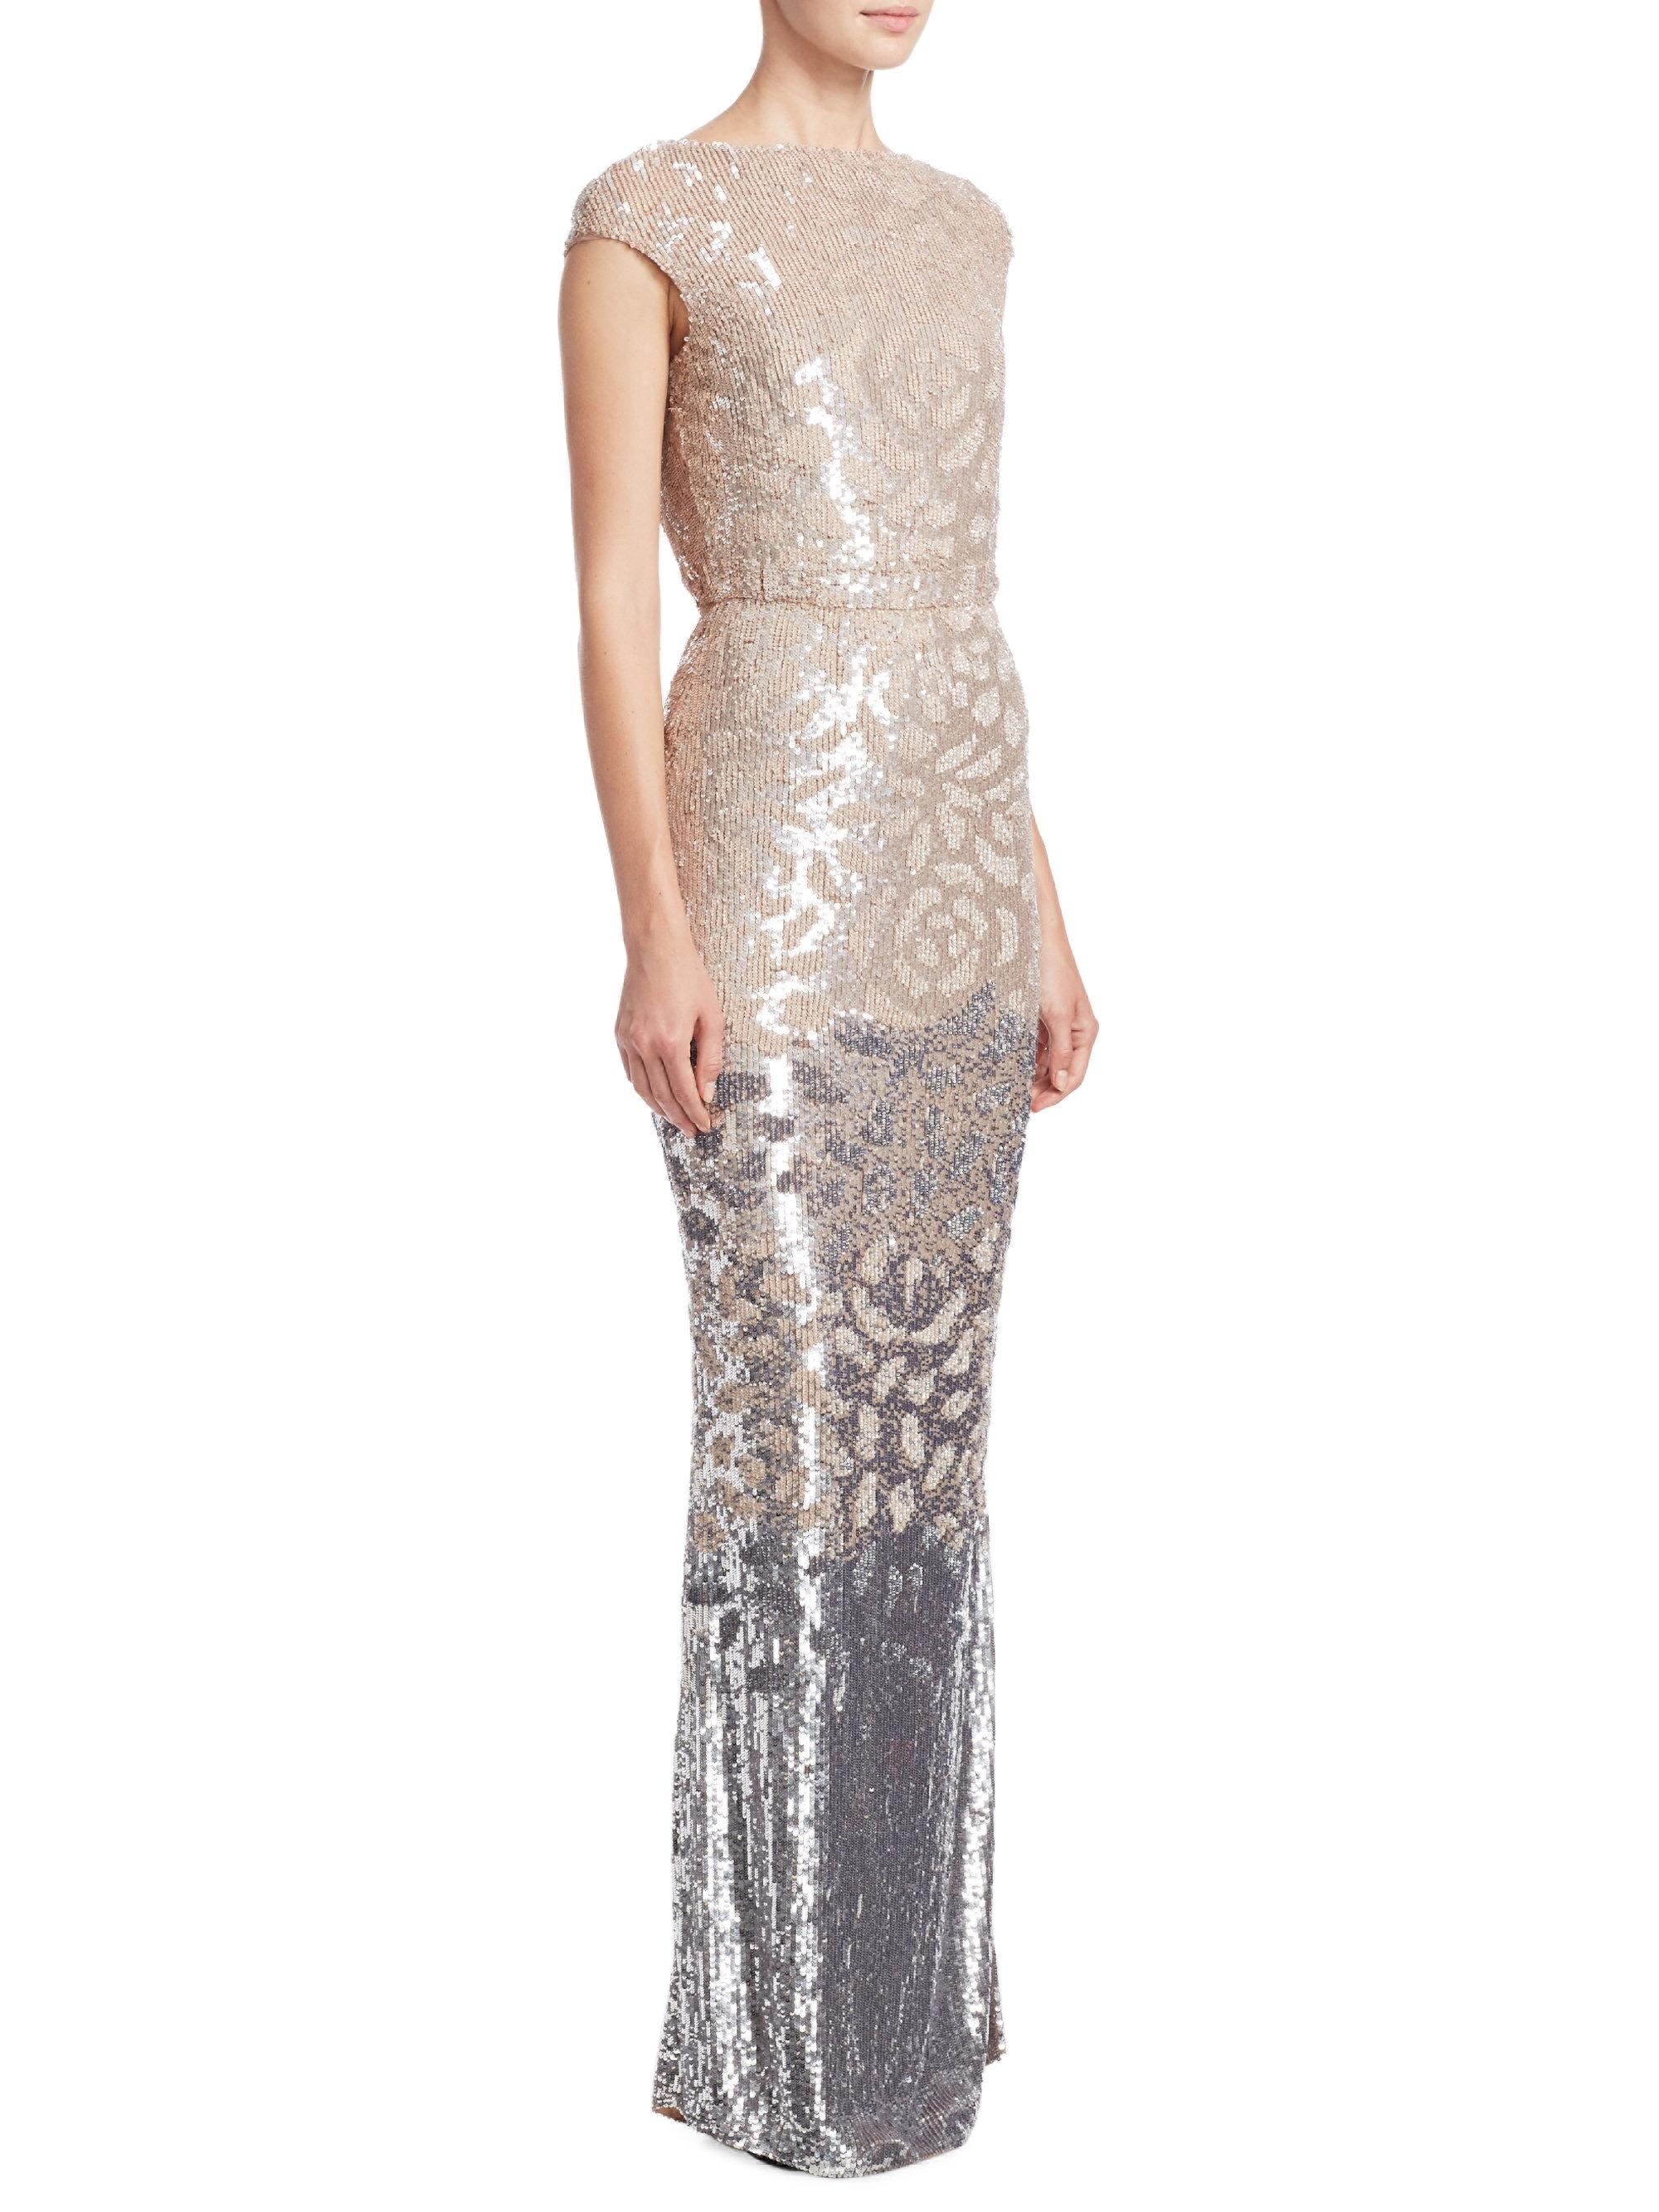 Lyst - Rachel Gilbert Carlotta Embellished Gown in Metallic